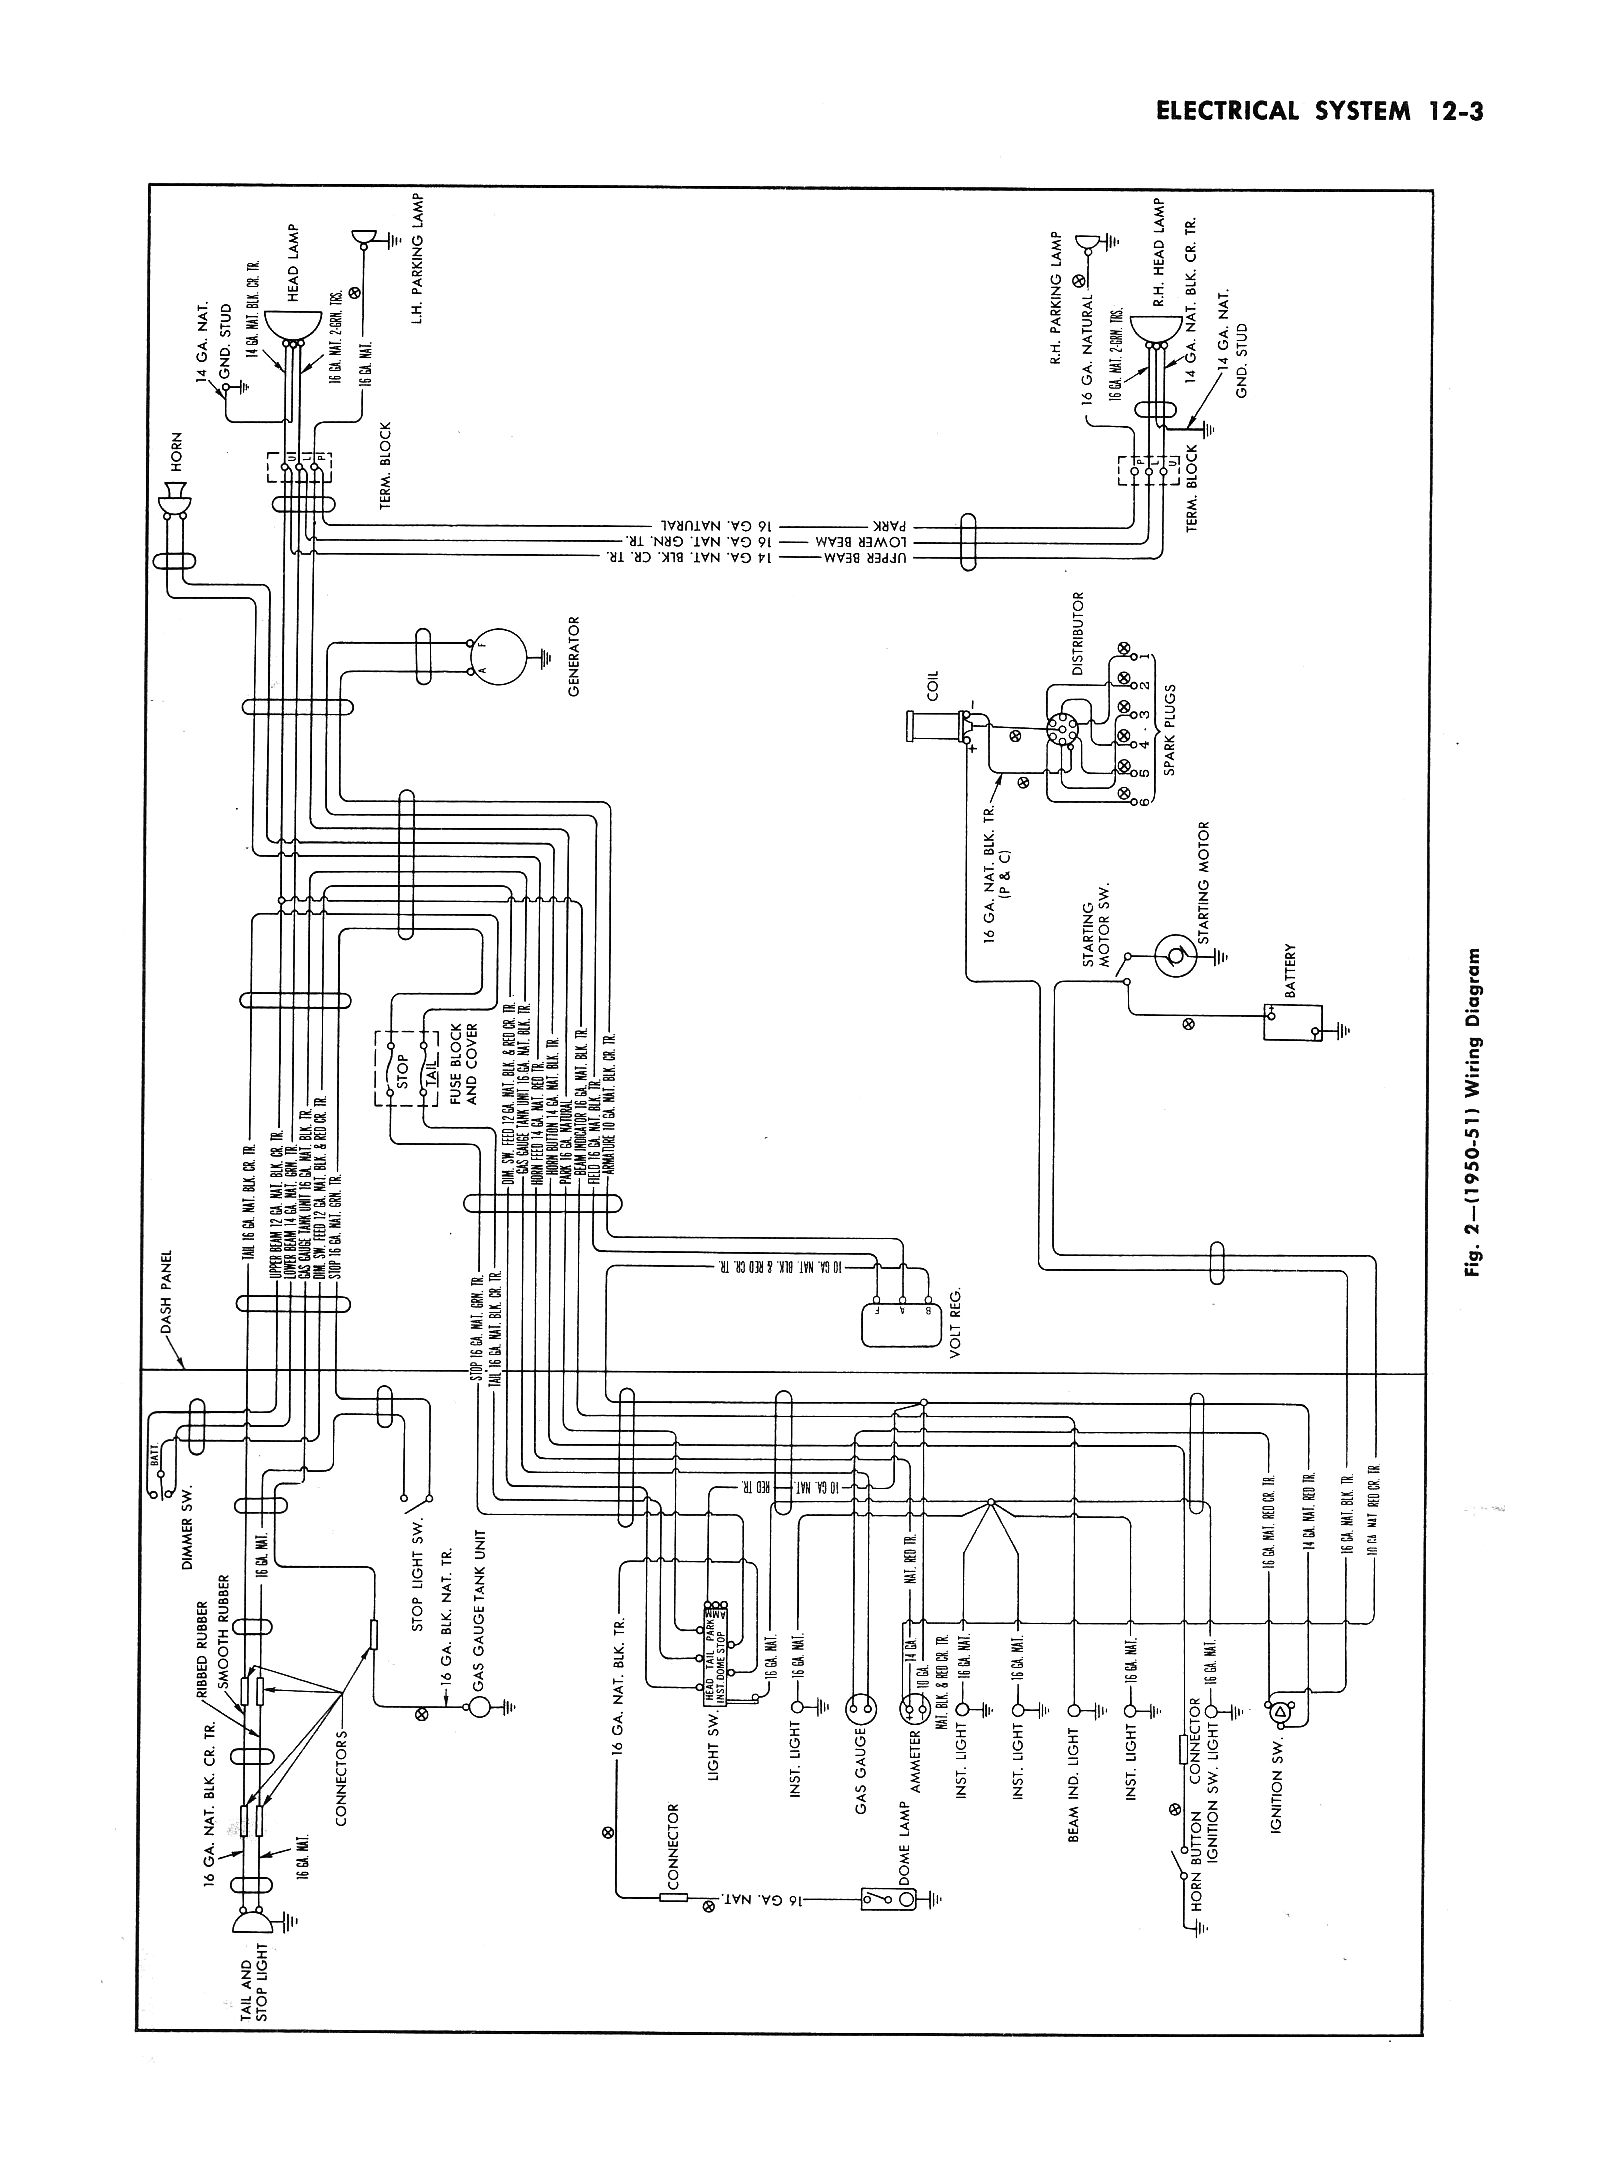 Chevy Wiring Diagrams 2002 Chevy Avalanche Wiring Diagram 52 Chevy Ignition  Switch Wiring Diagram